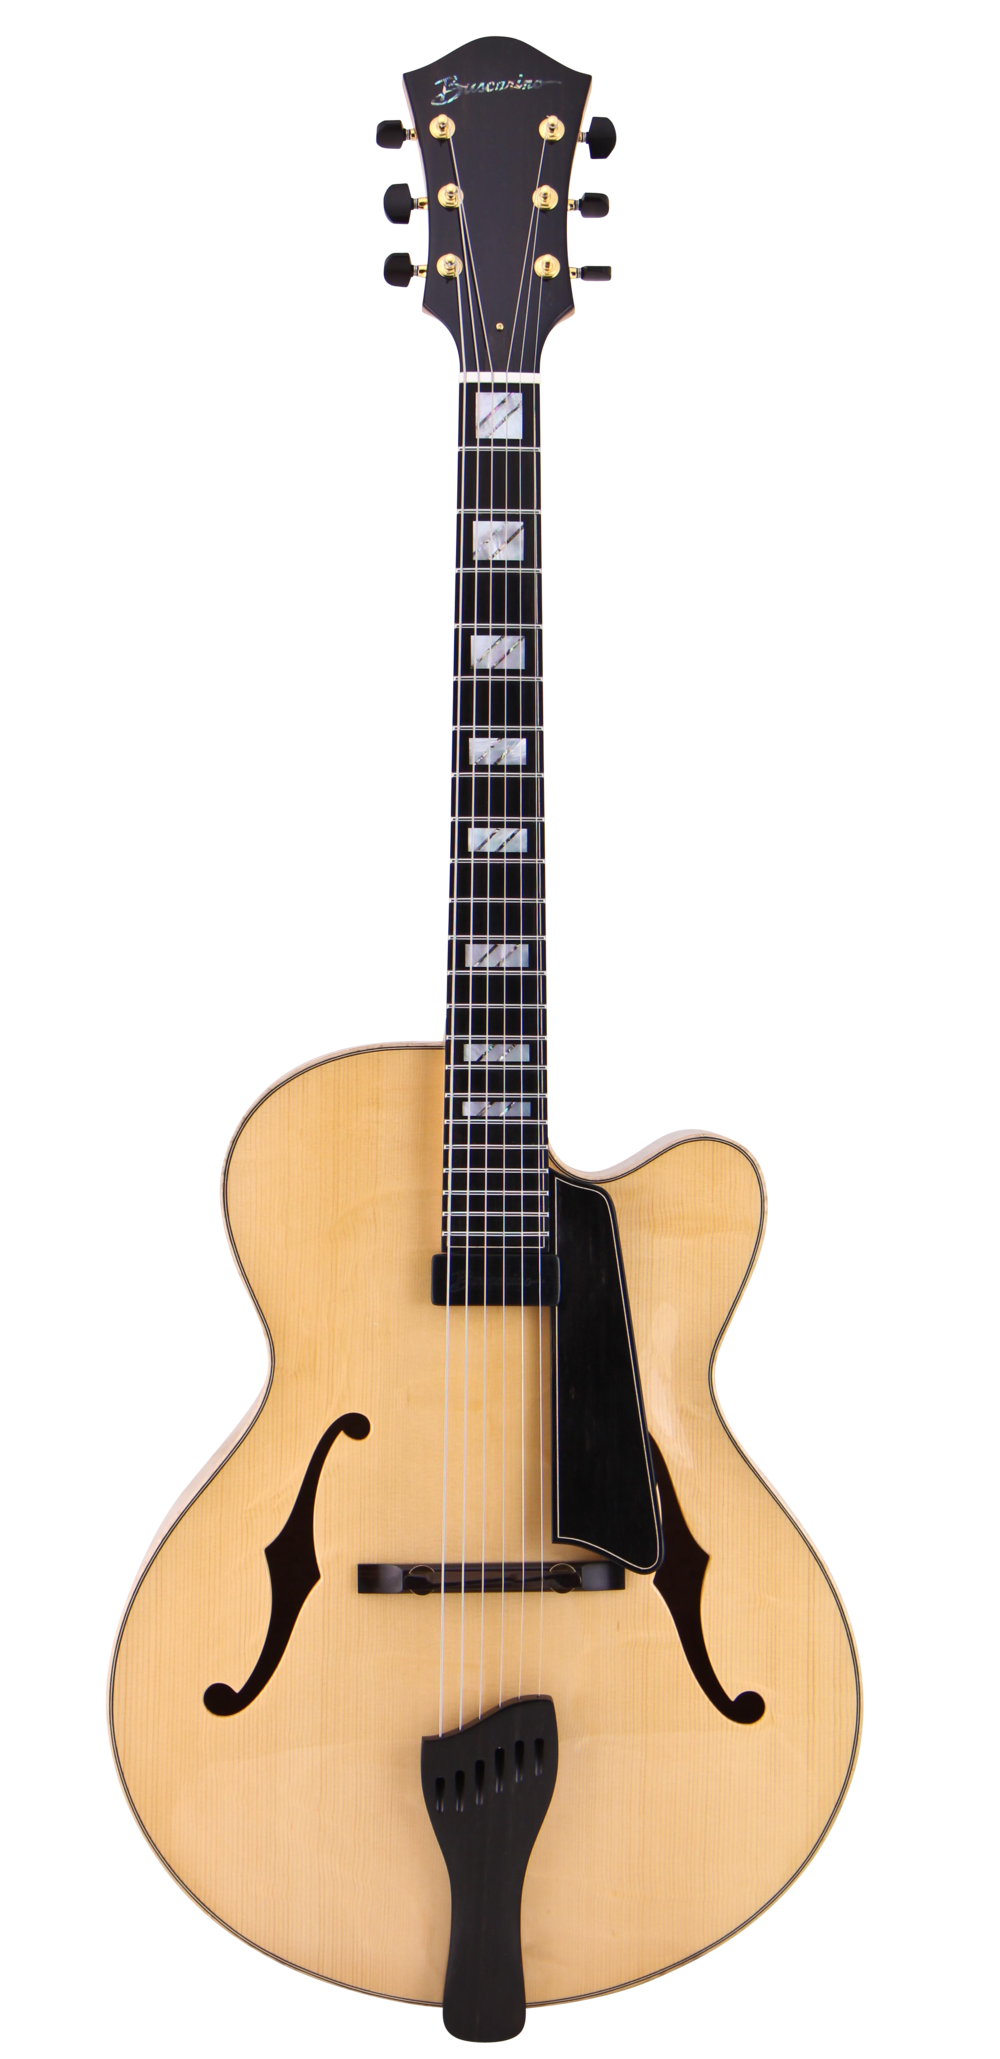 The Artisan Archtop